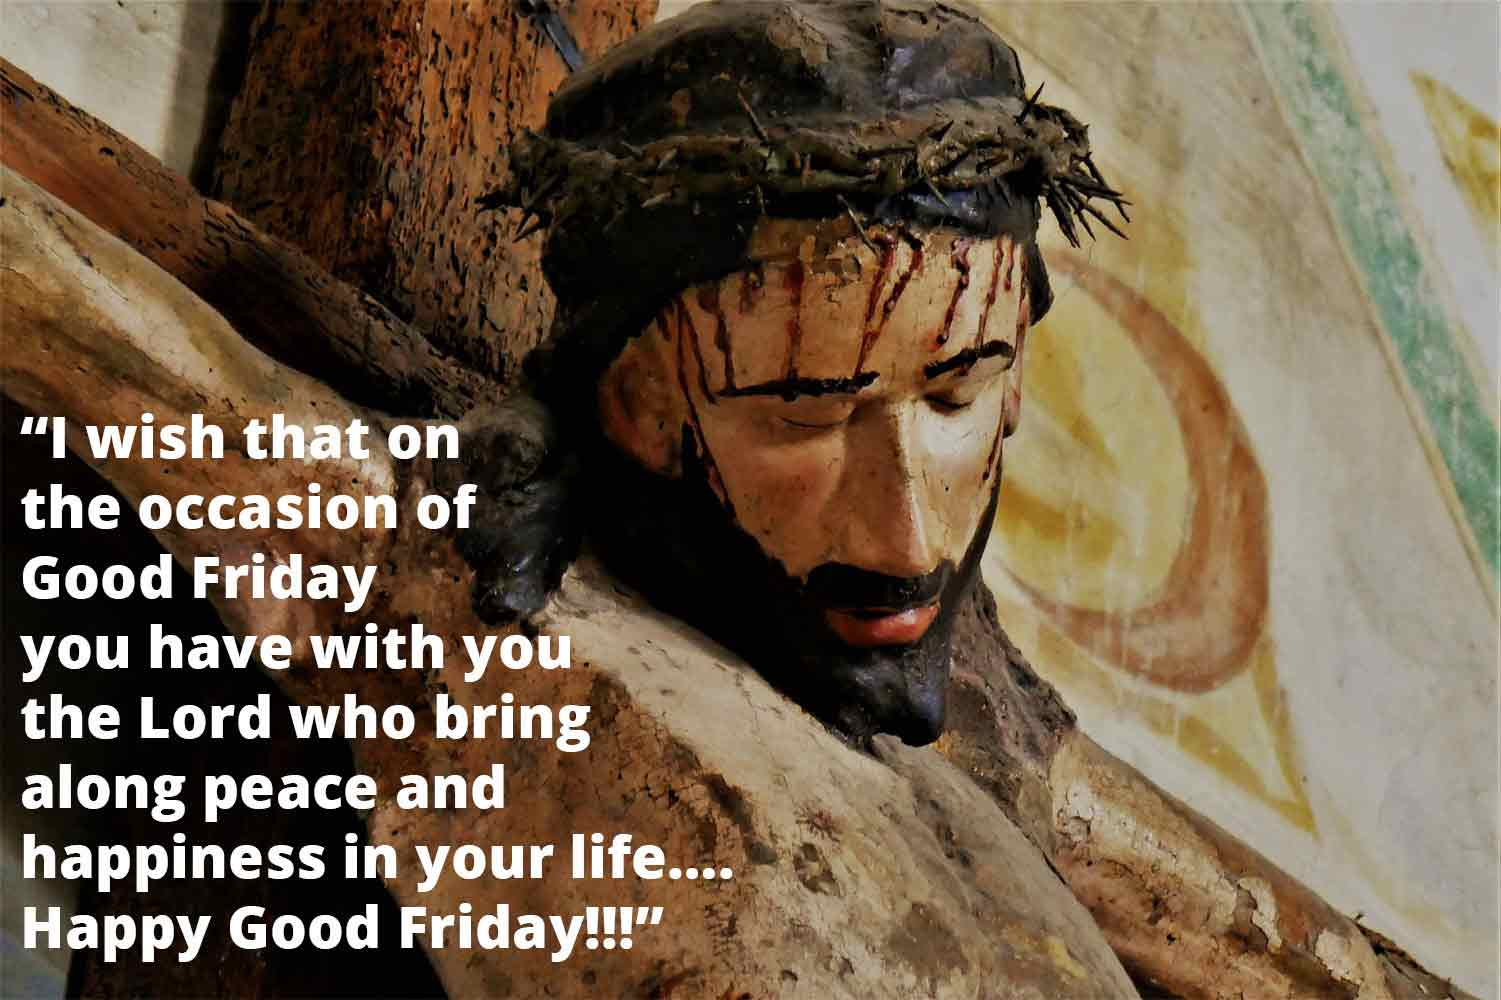 My bible song wishes you happy good Friday 2019